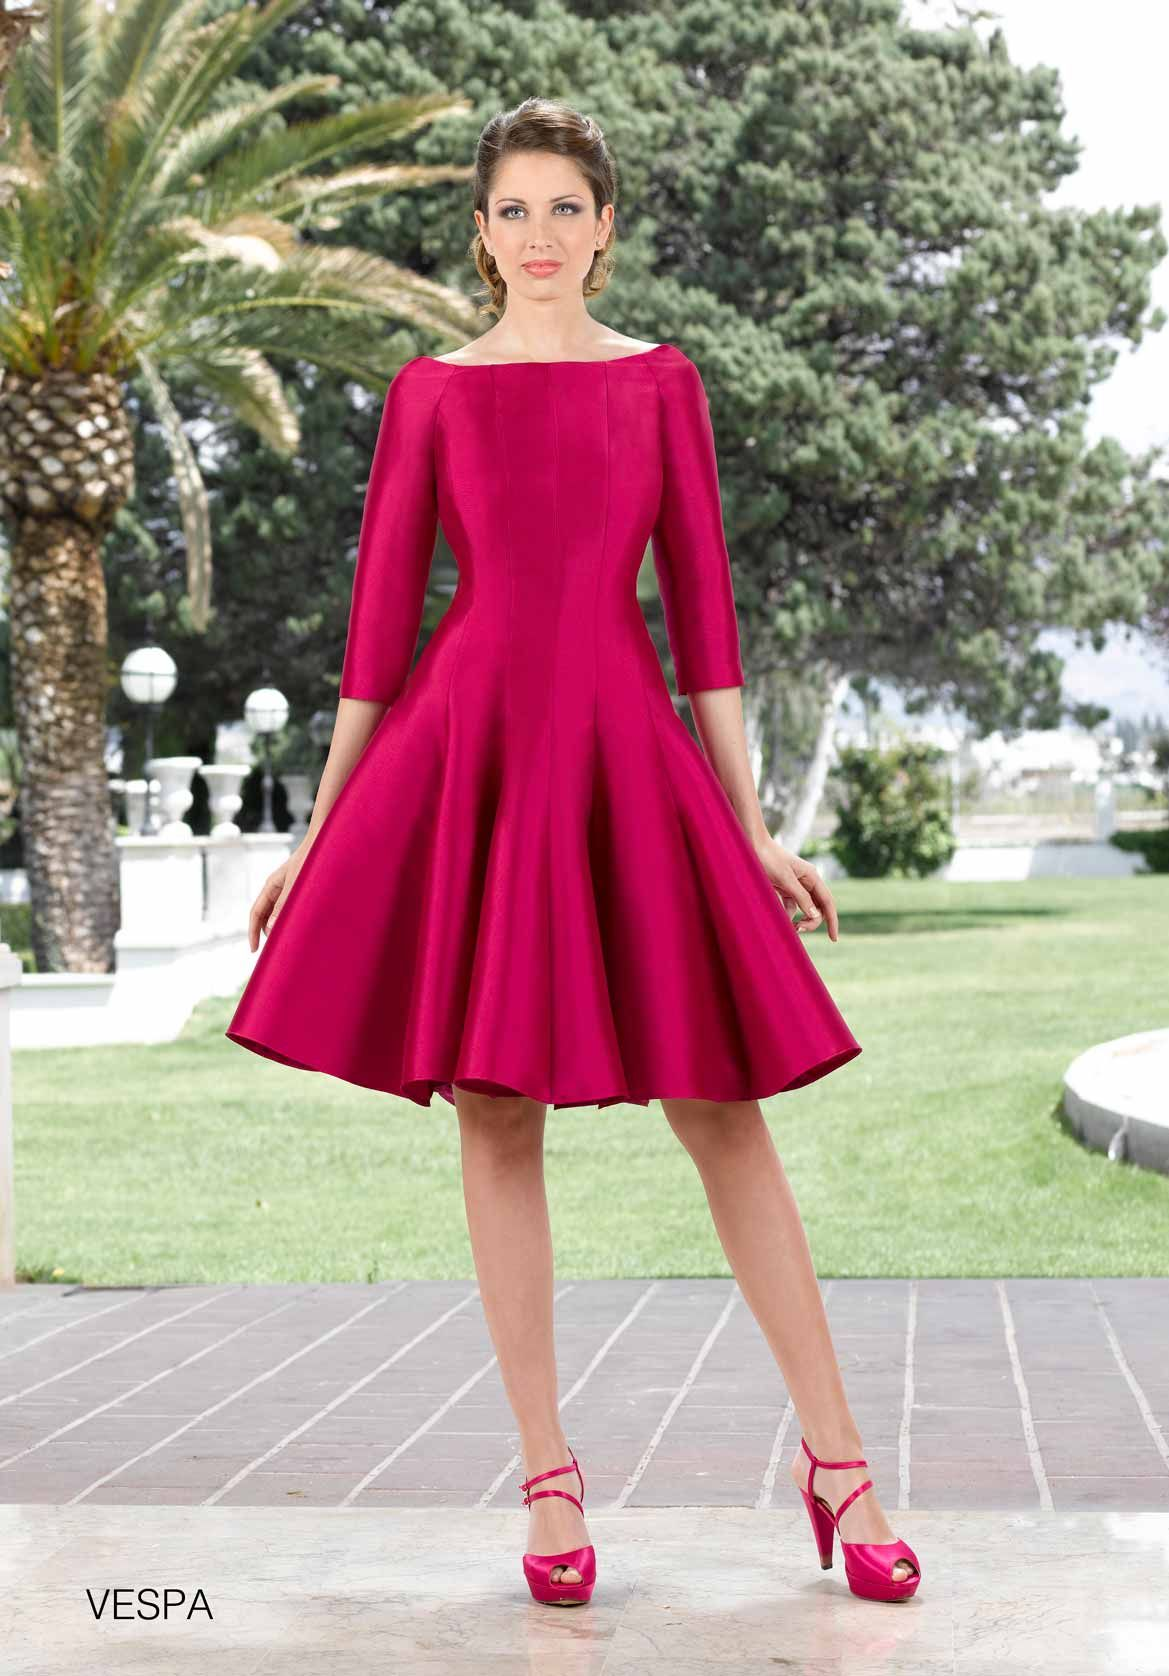 Plus size wedding dresses with red accents  Rosa Rueda colección   ENTRENOVIAS   a  Pinterest  Prom